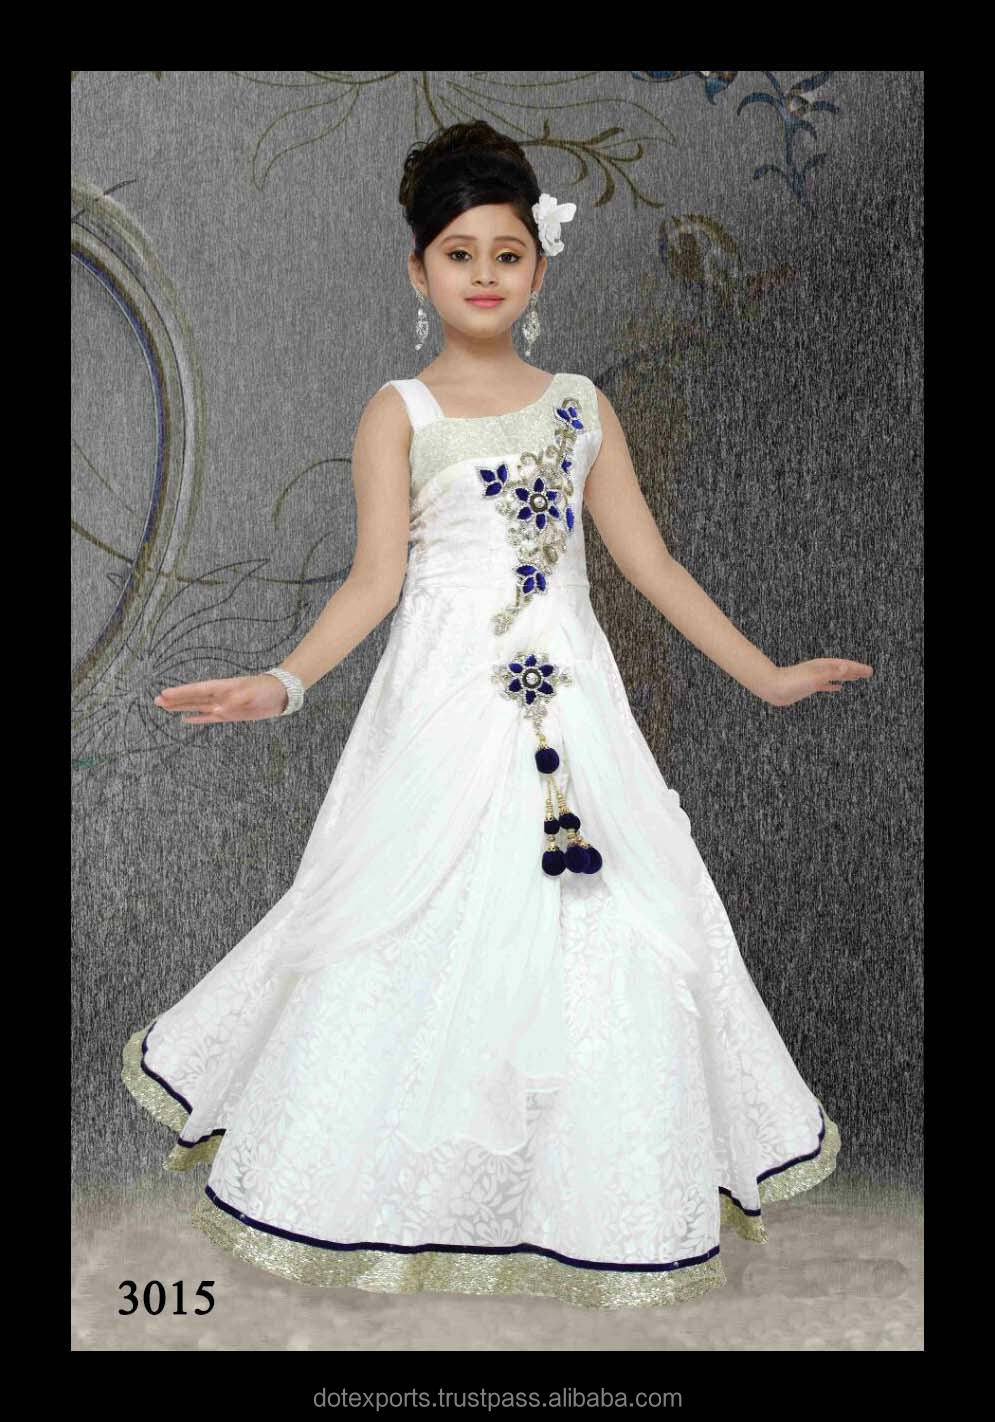 Evening Gown/frock Designs For Kids In White Colour - Buy Kids ...